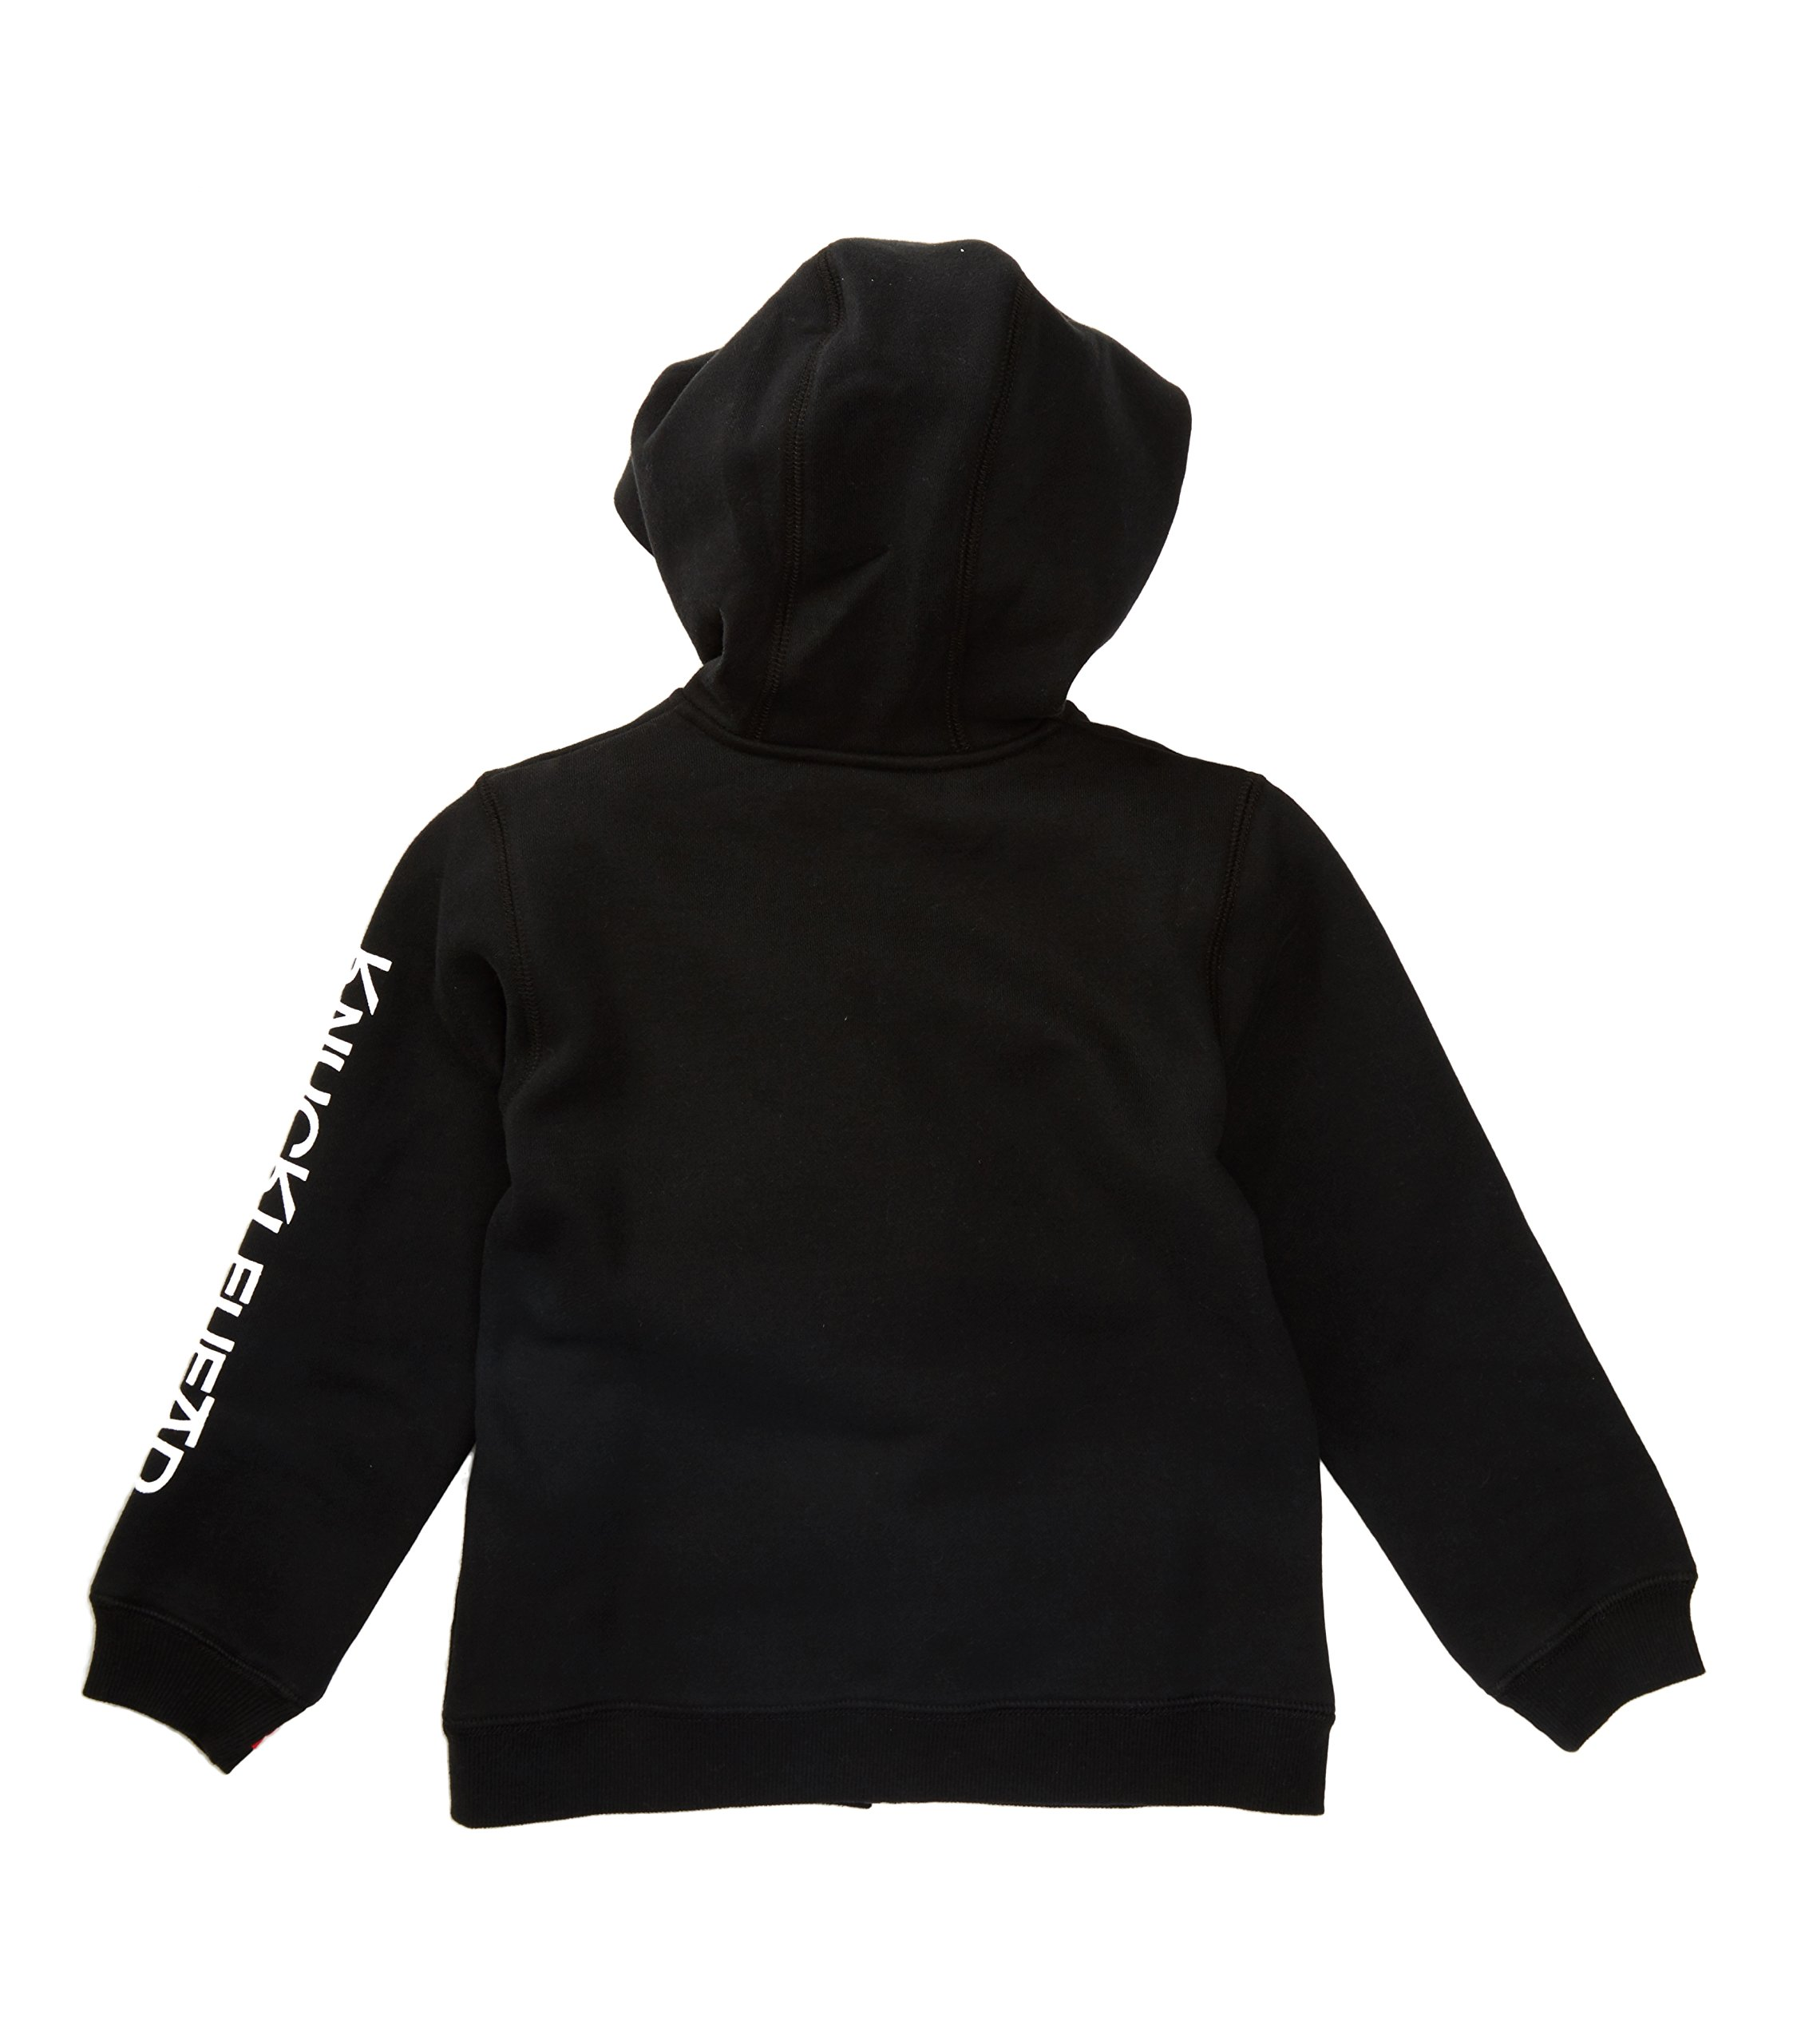 Born to Love Knuckleheads - Toddler Hooded Sweatshirt Boys Black Logo Pullover Zip Up Hoodie (8T) by Born to Love (Image #4)